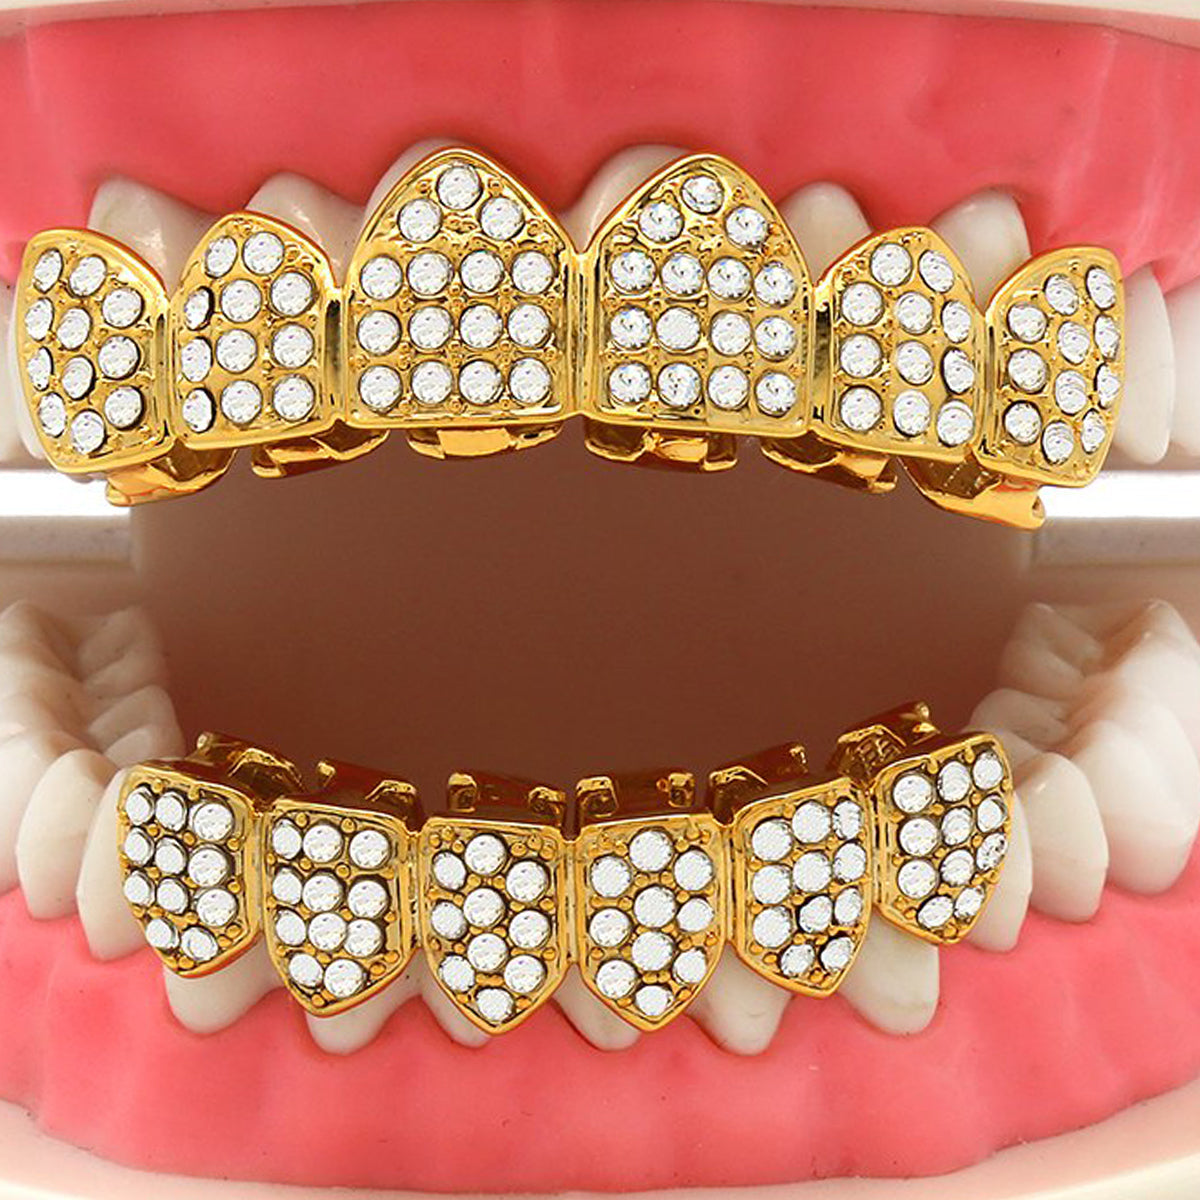 GRILLZ SET GOLD FULLY ICED OUT